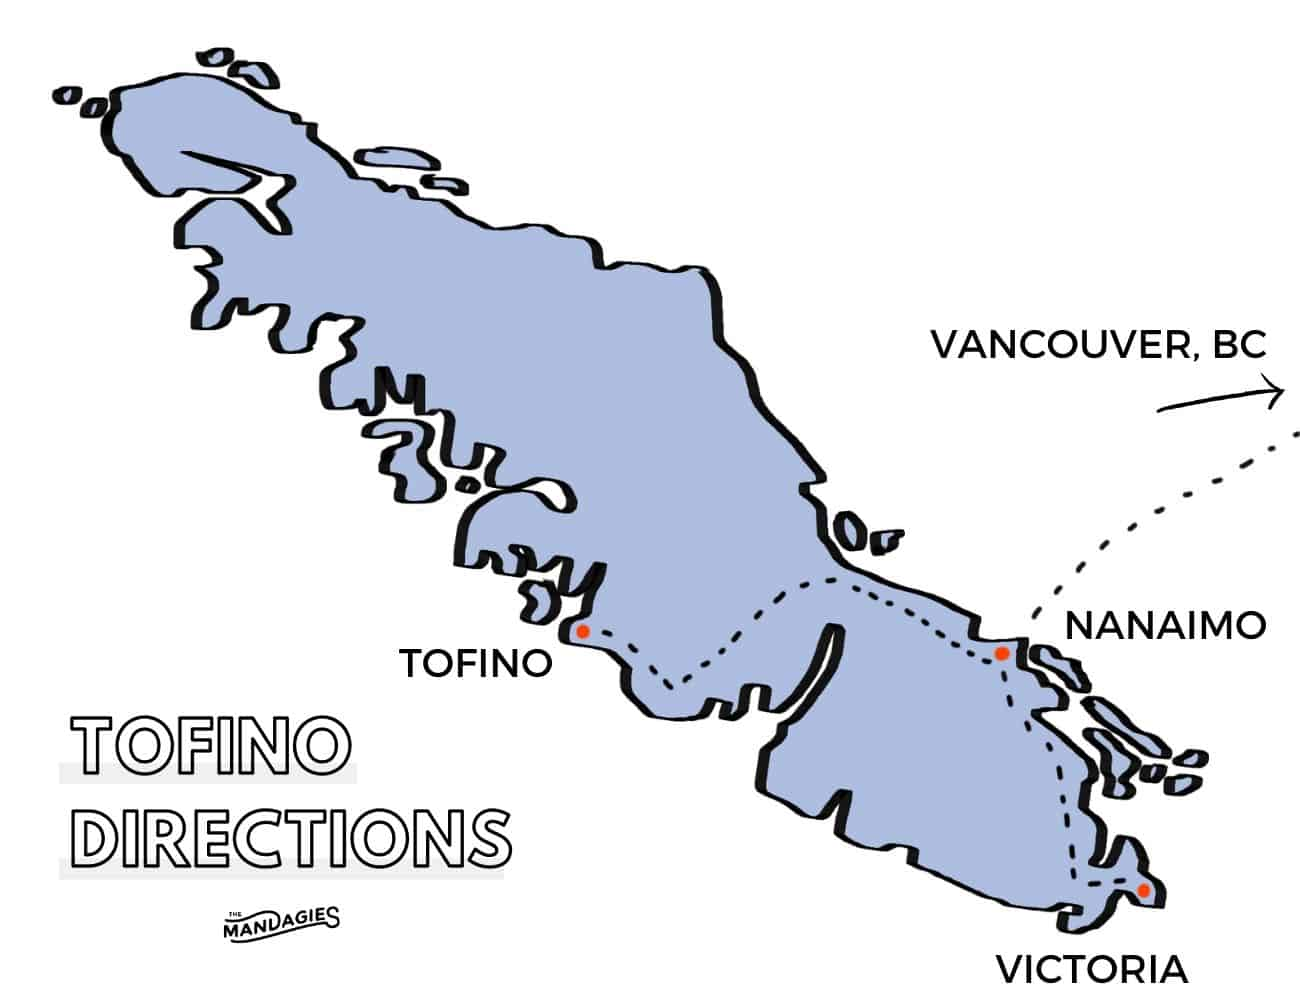 Directions to Tofino, BC, Vancouver Island Route Map TheMandagies.com